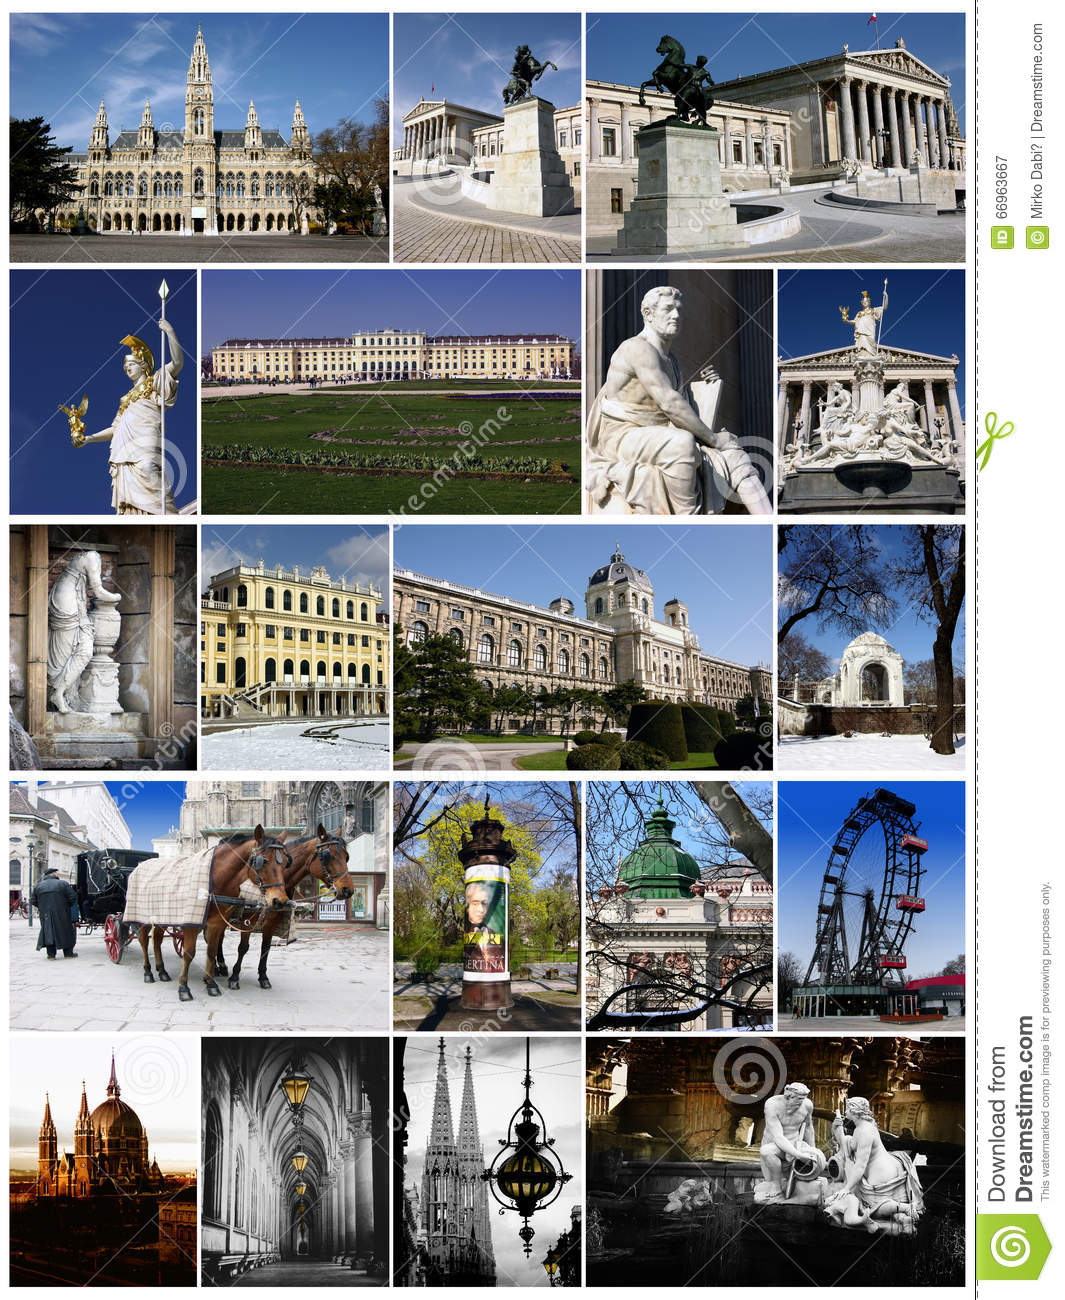 Vienna Austria Stock Images, Royalty-Free Images & Vectors ...